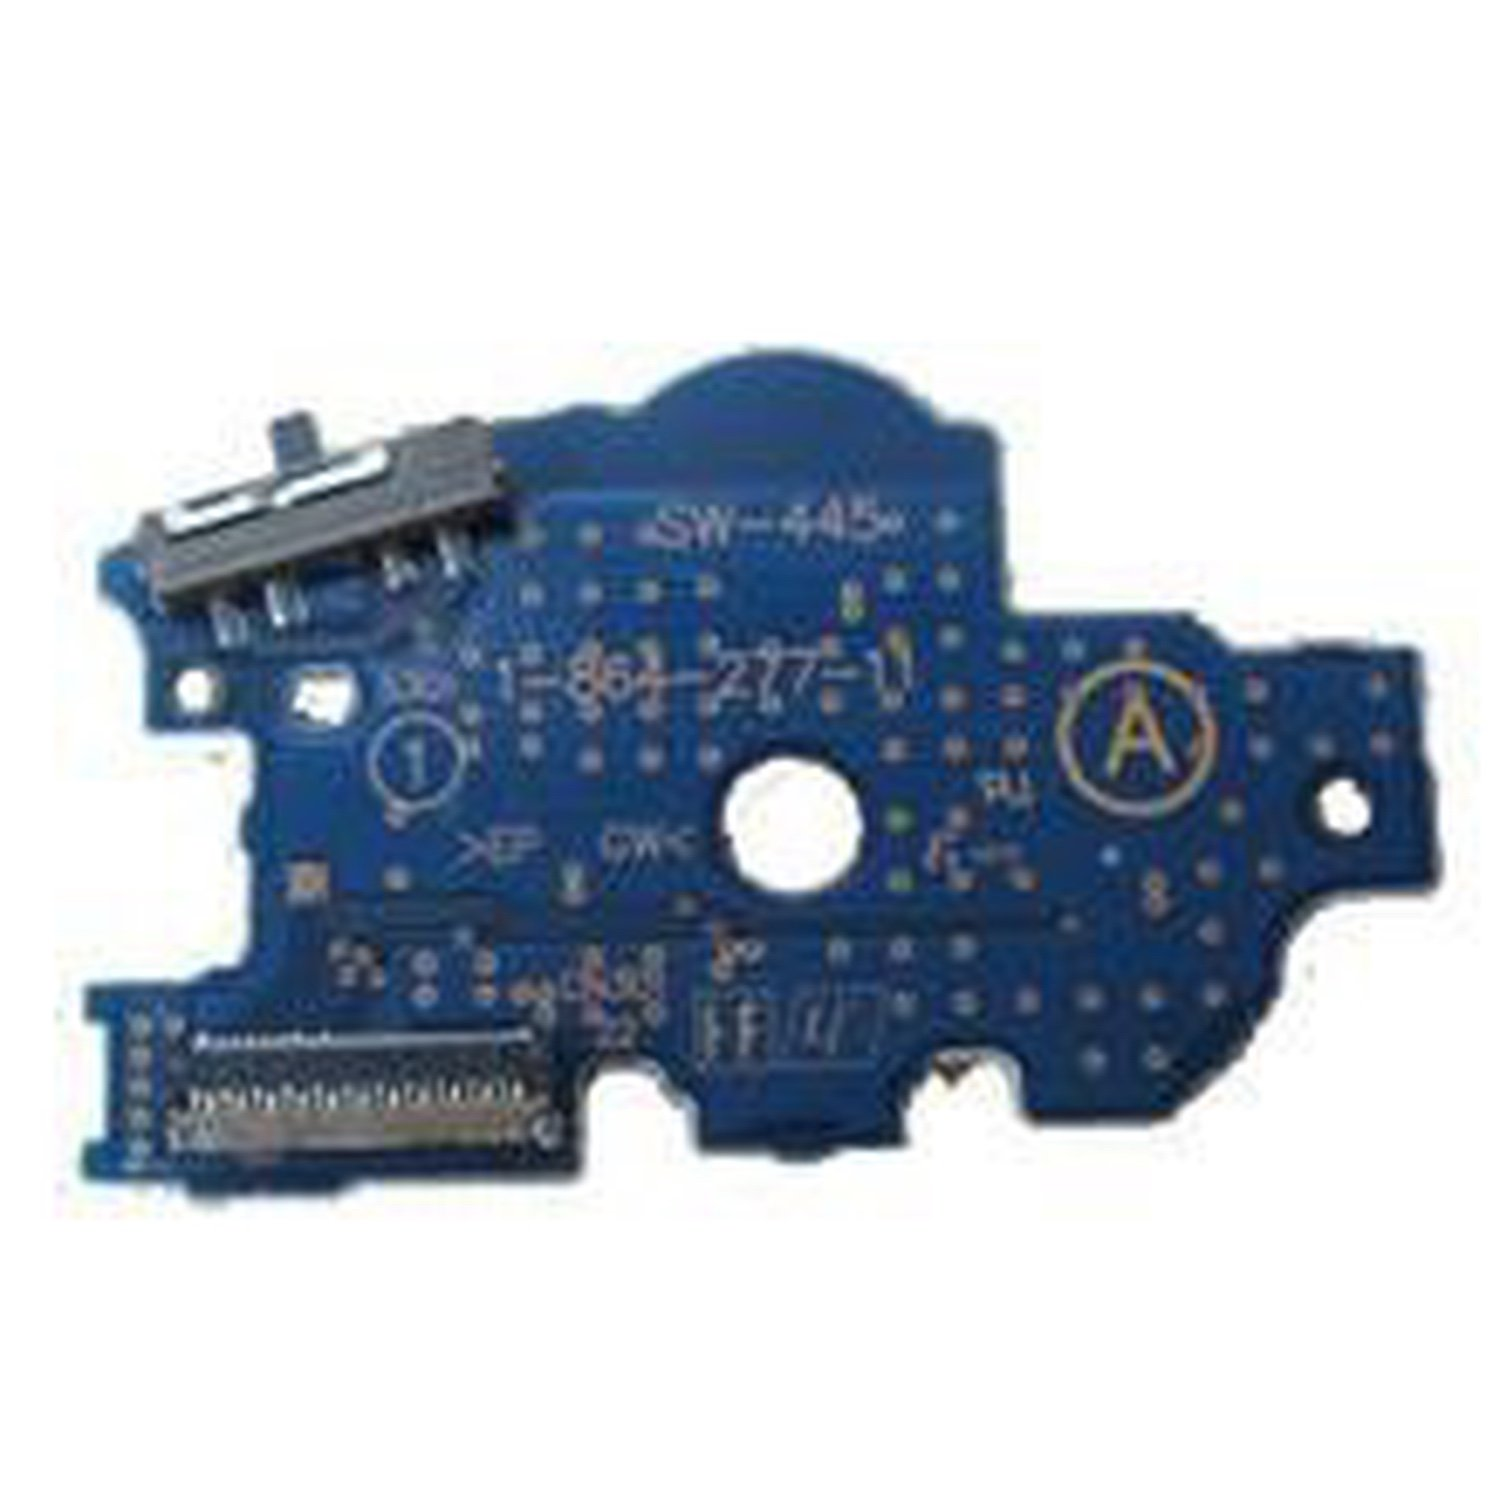 PSP Button/Power Switch Circuit Board